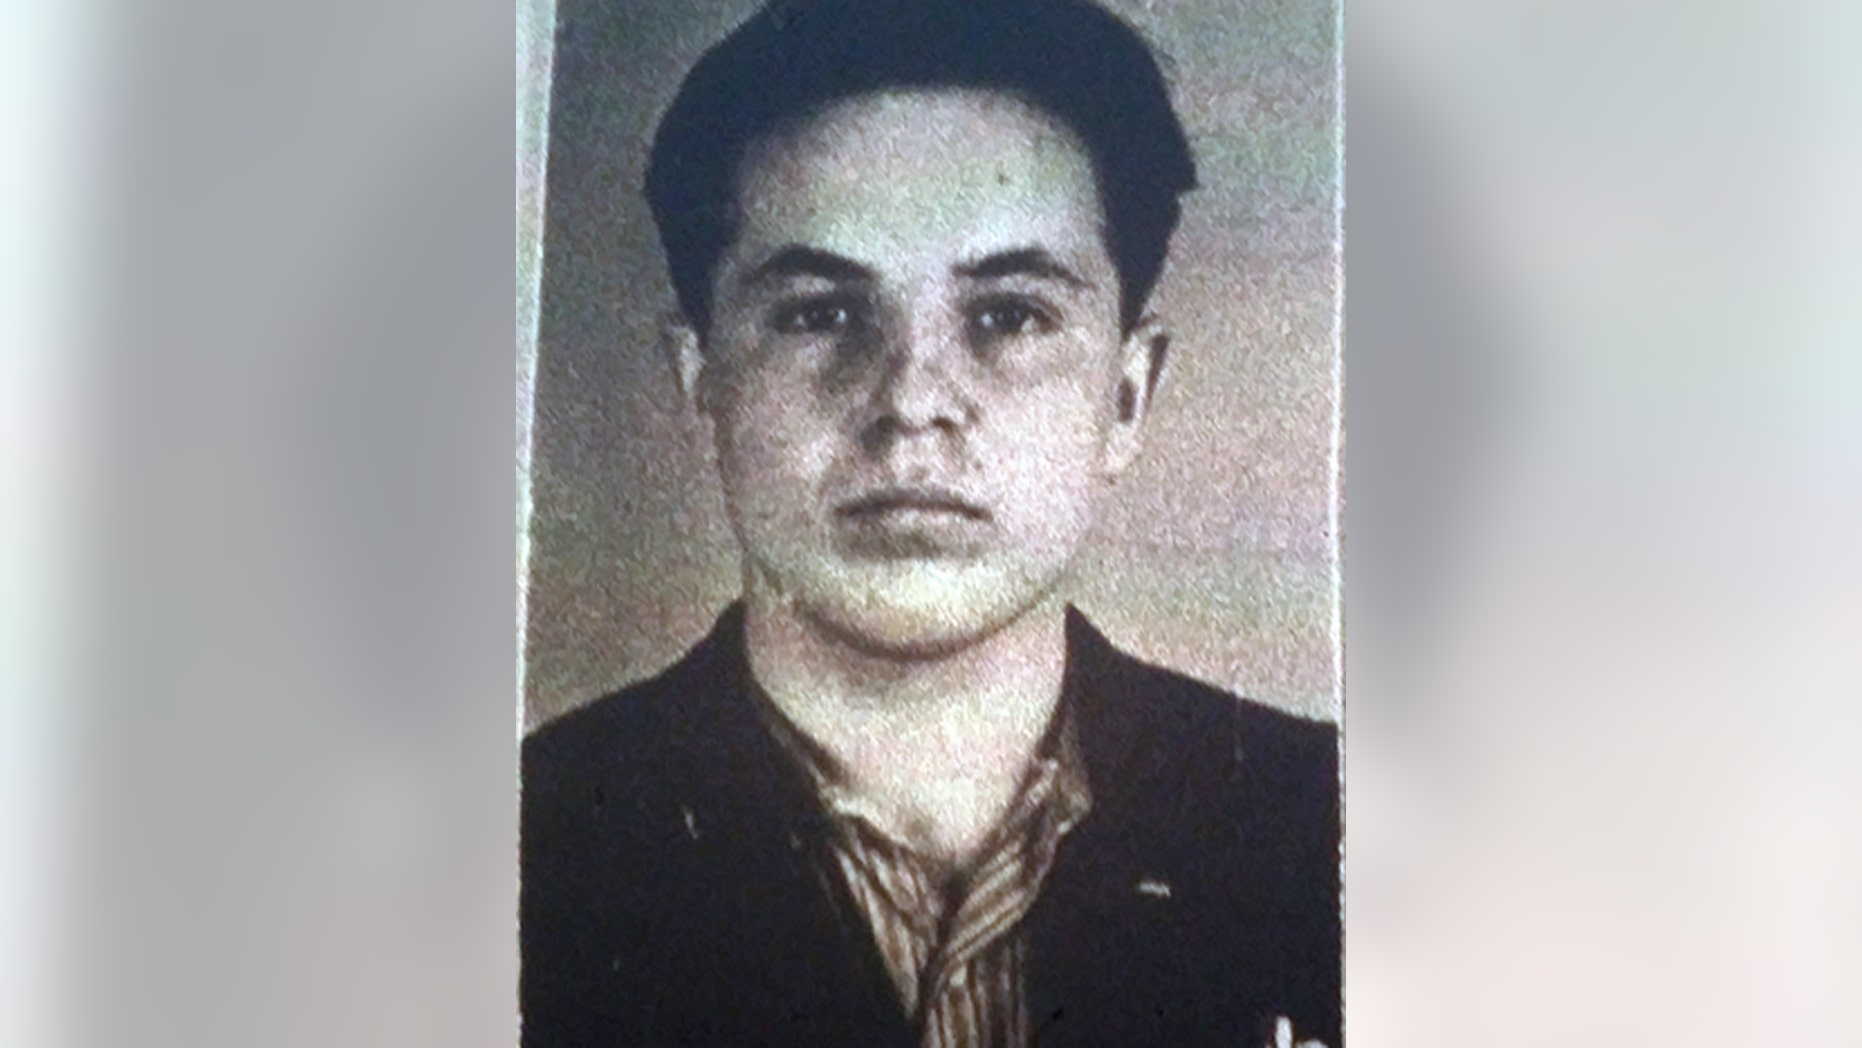 This undated photo of Michael Karkoc accompanied his application for German citizenship filed with the Nazi SS-run immigration office in 1940.